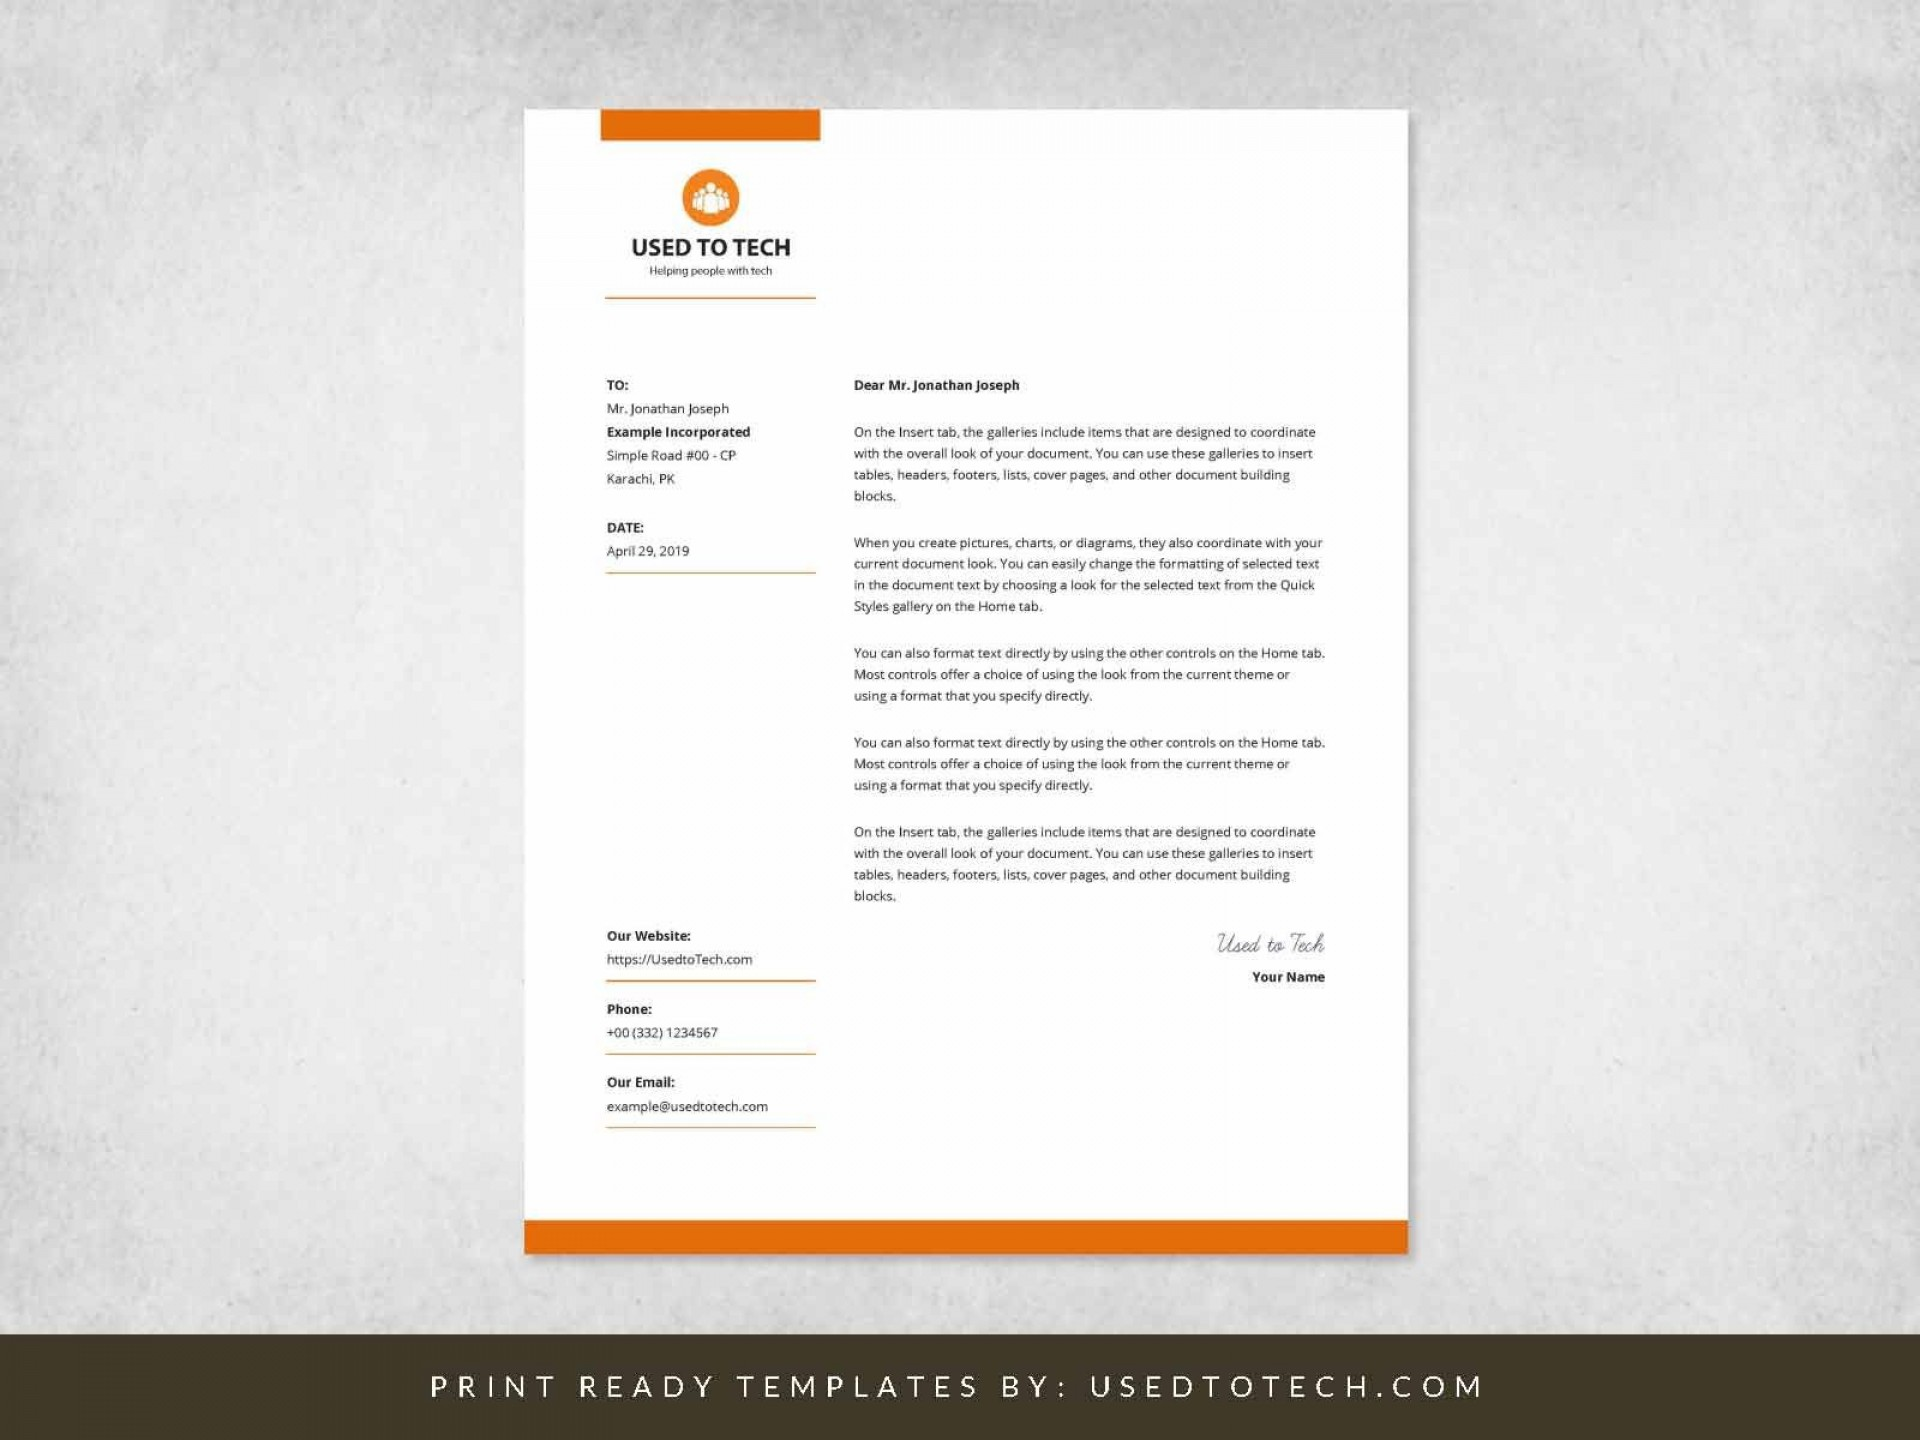 001 Surprising Letterhead Sample In Word Format Free Download Example  Design Template Psd1920